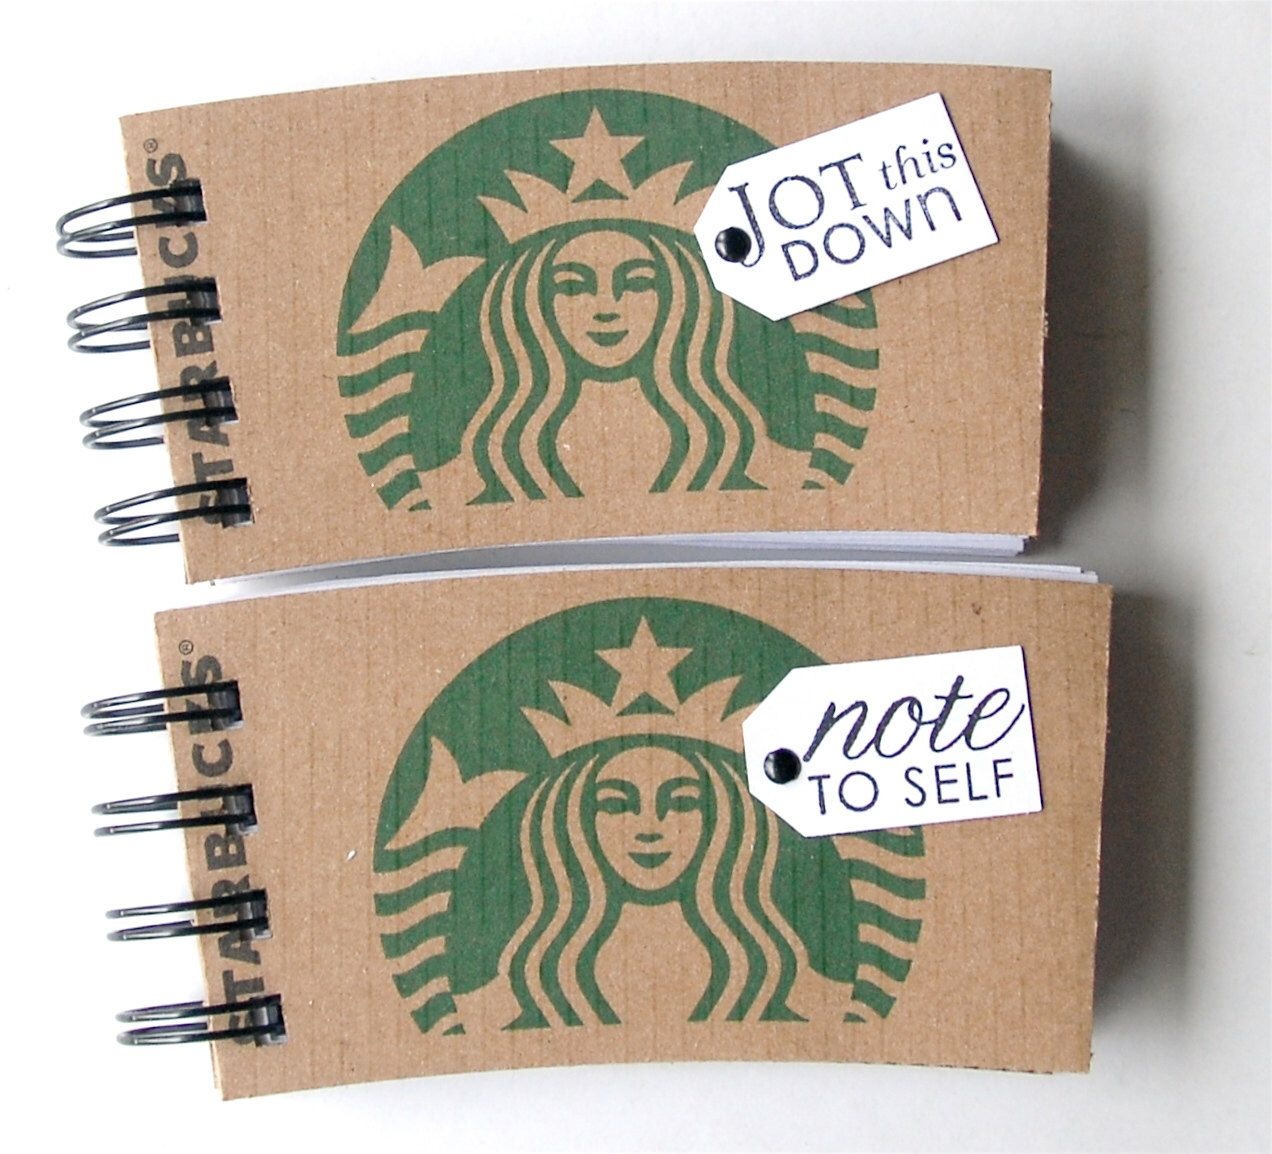 STARBUCKS SPIRAL NOTEPAD made out of Coffee Sleeves-set of 2 by CampfireDesigns on Etsy https://www.etsy.com/listing/82885382/starbucks-spiral-notepad-made-out-of